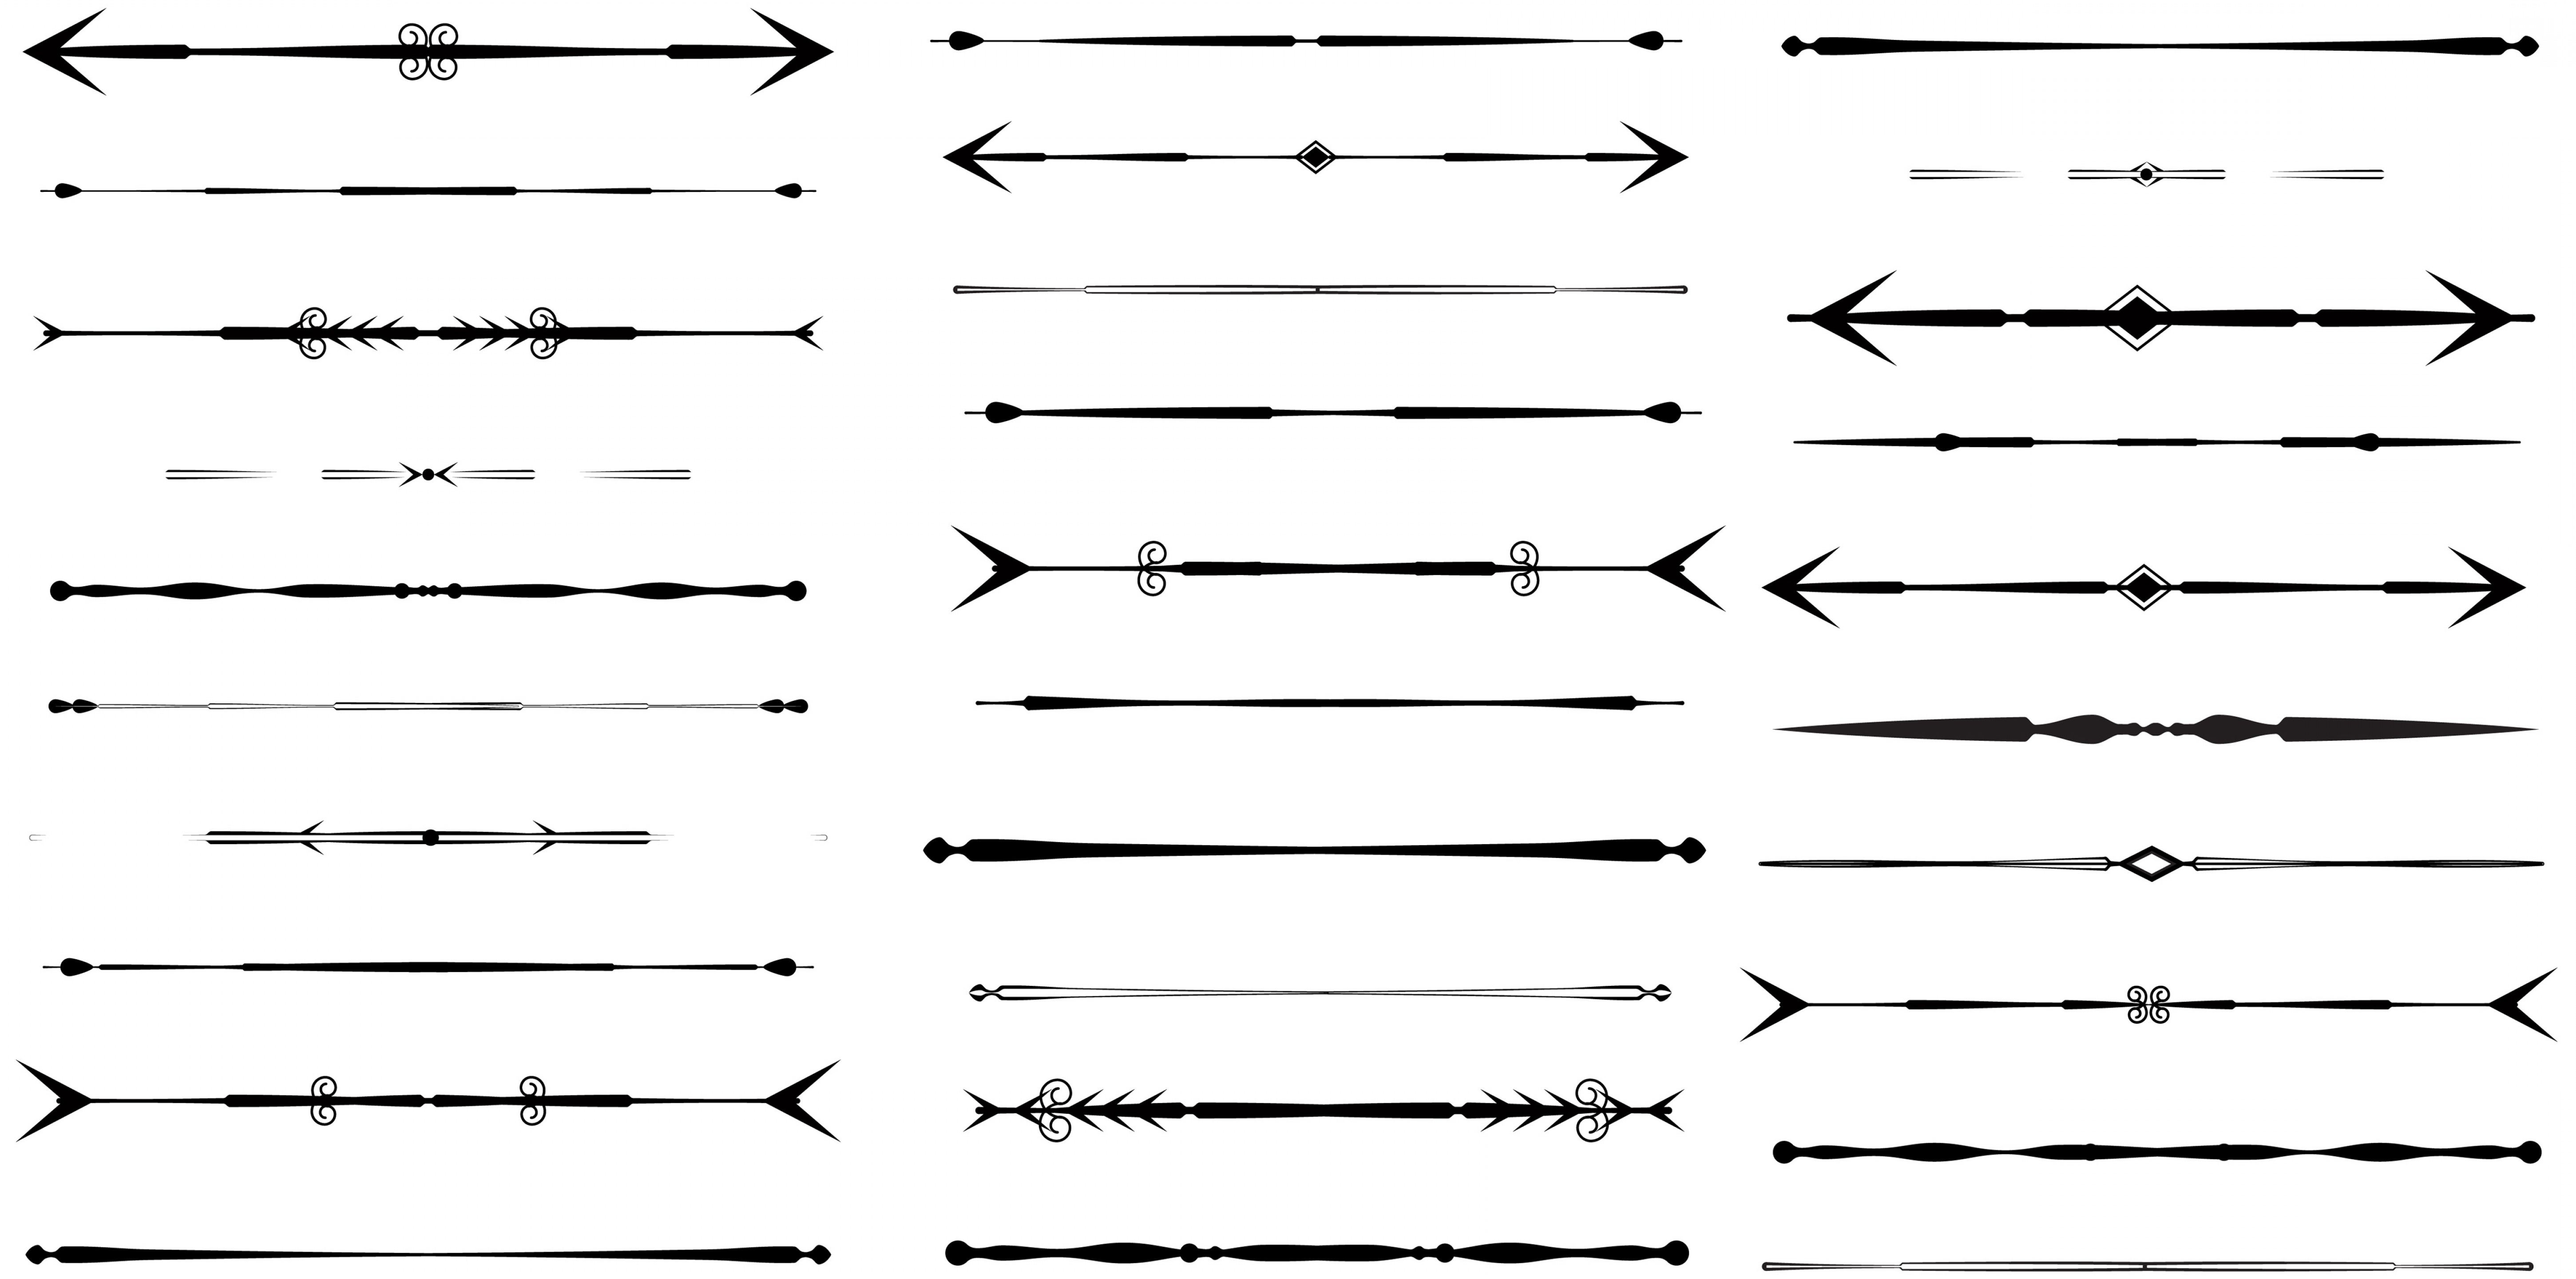 Aztec page divider clipart banner black and white download Free Arrow Divider Cliparts, Download Free Clip Art, Free Clip Art ... banner black and white download